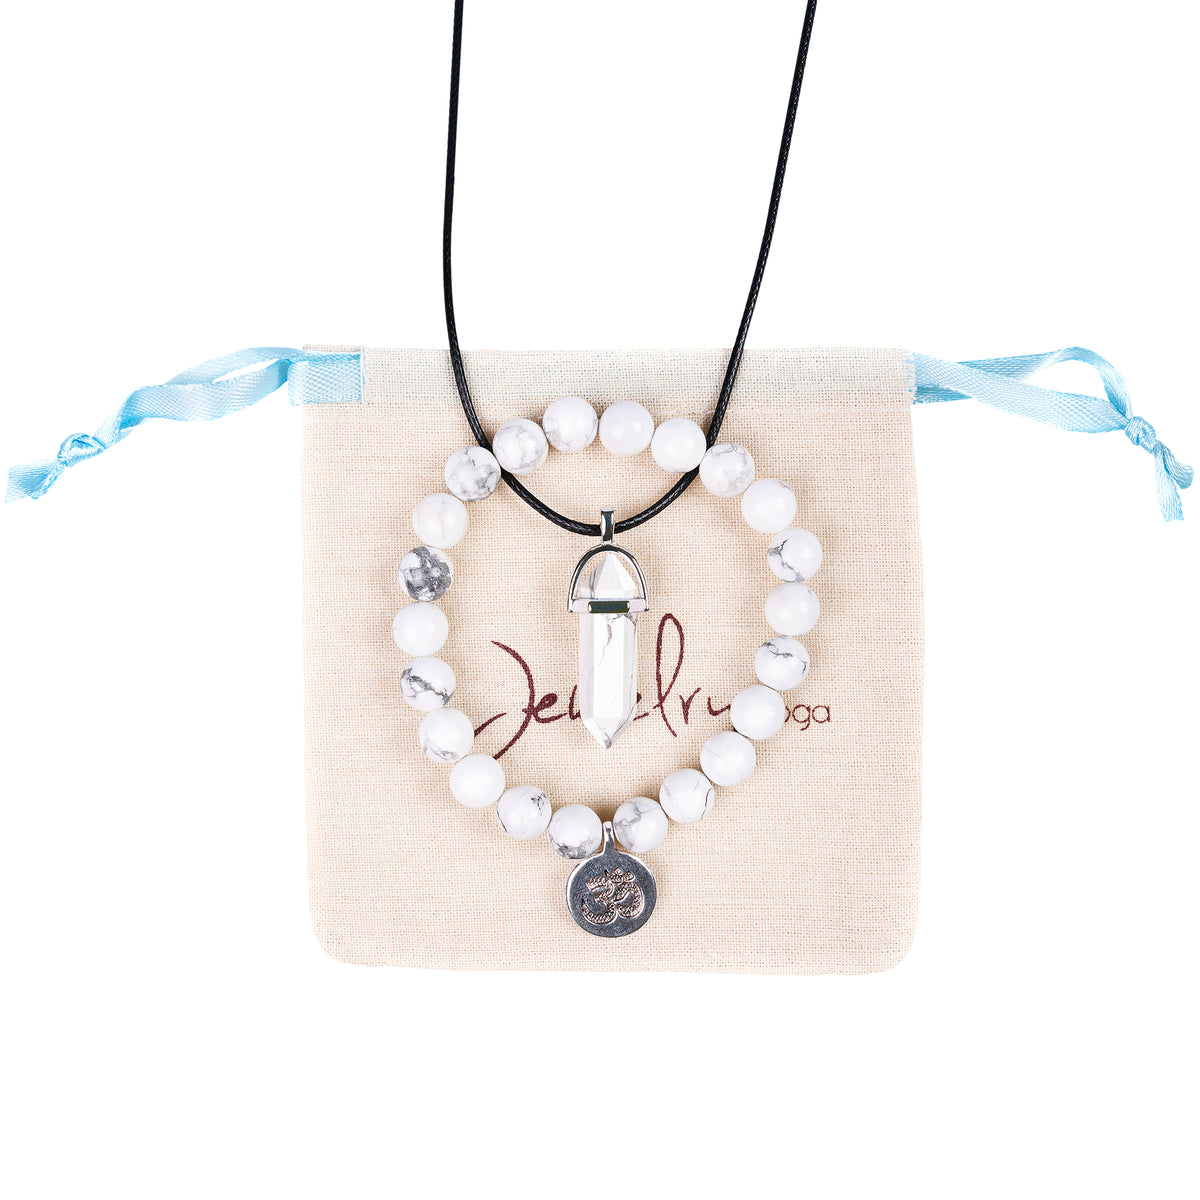 Rare Healing White Turquoise Bracelet and Necklace Set